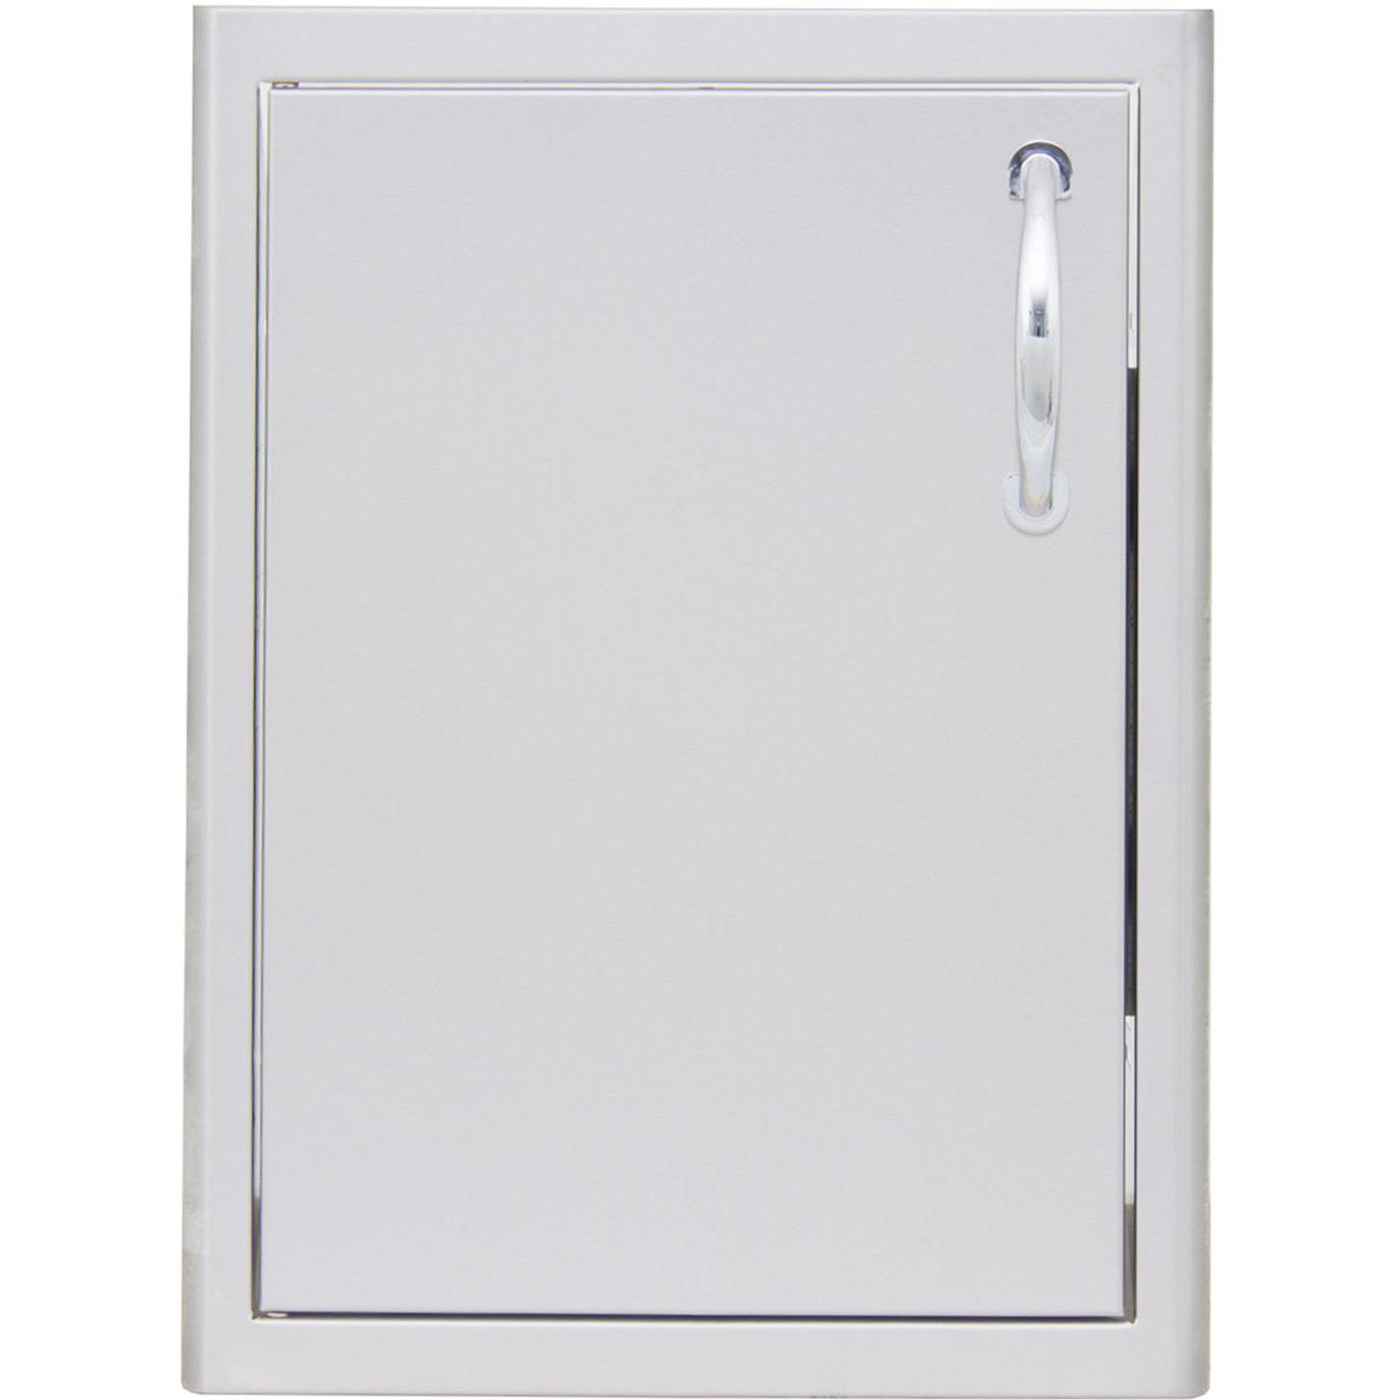 "Blaze 18"" Single Access Door, Left Hinged"